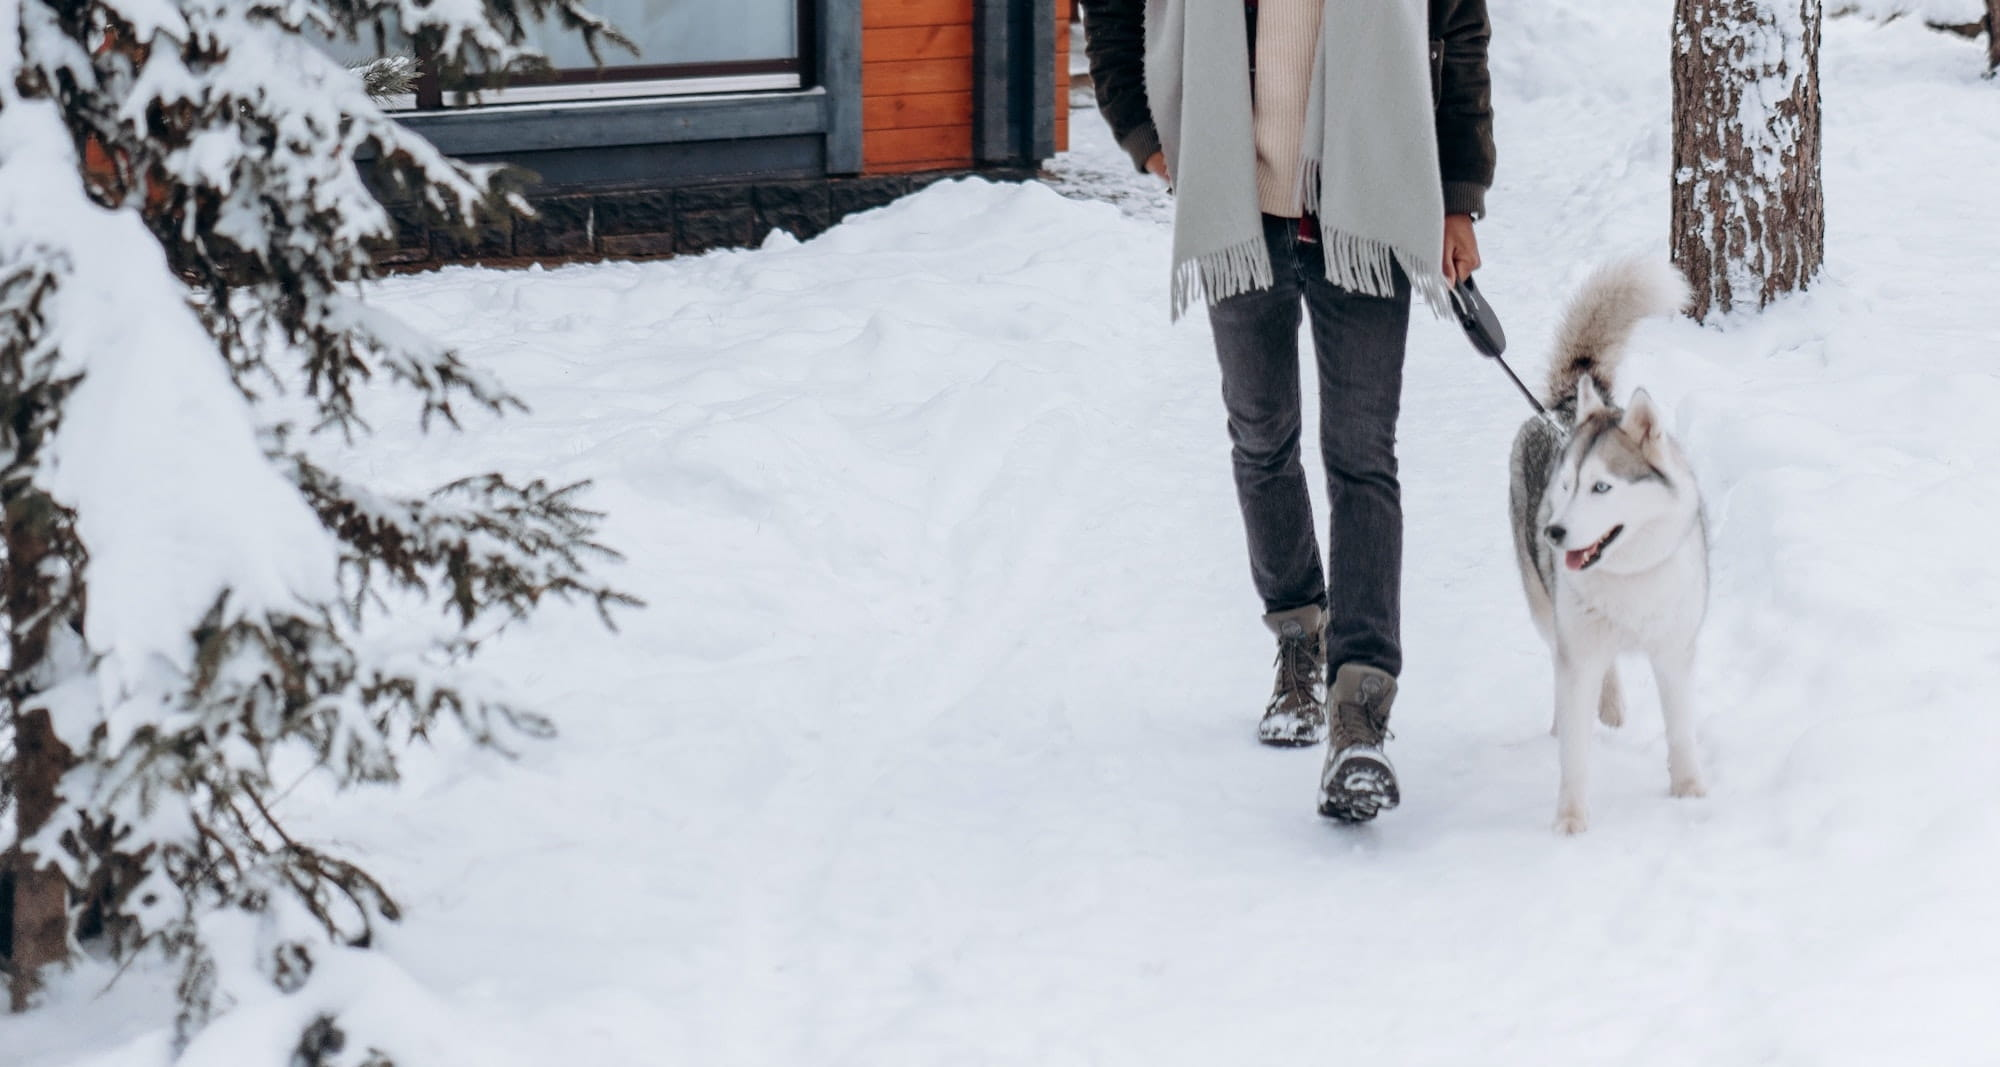 A dog and his owner walking in the snow